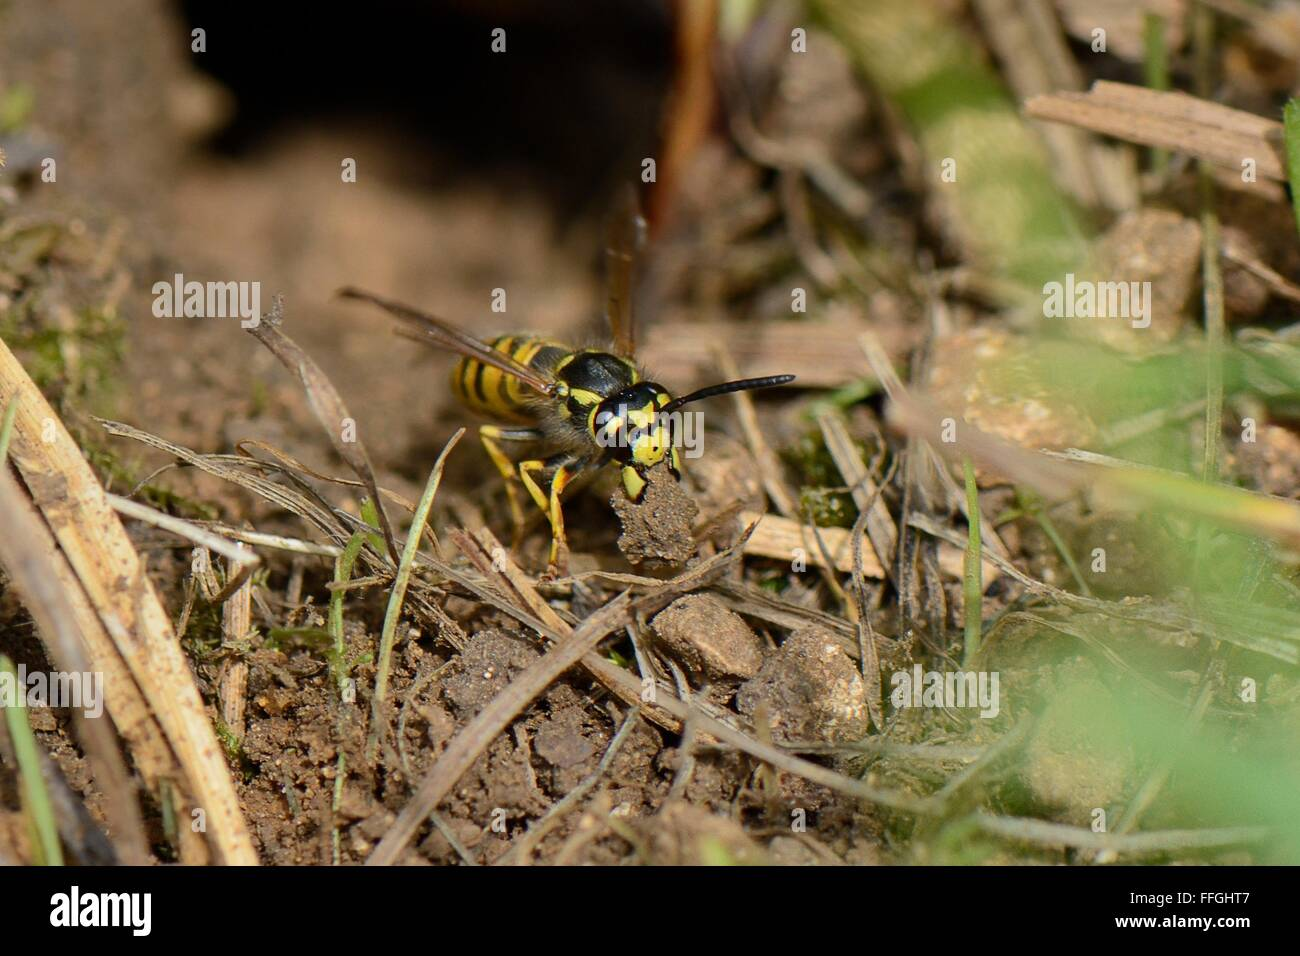 German / European wasp (Vespula germanica) worker excavating a nest cavity and carrying a ball of soil to deposit - Stock Image